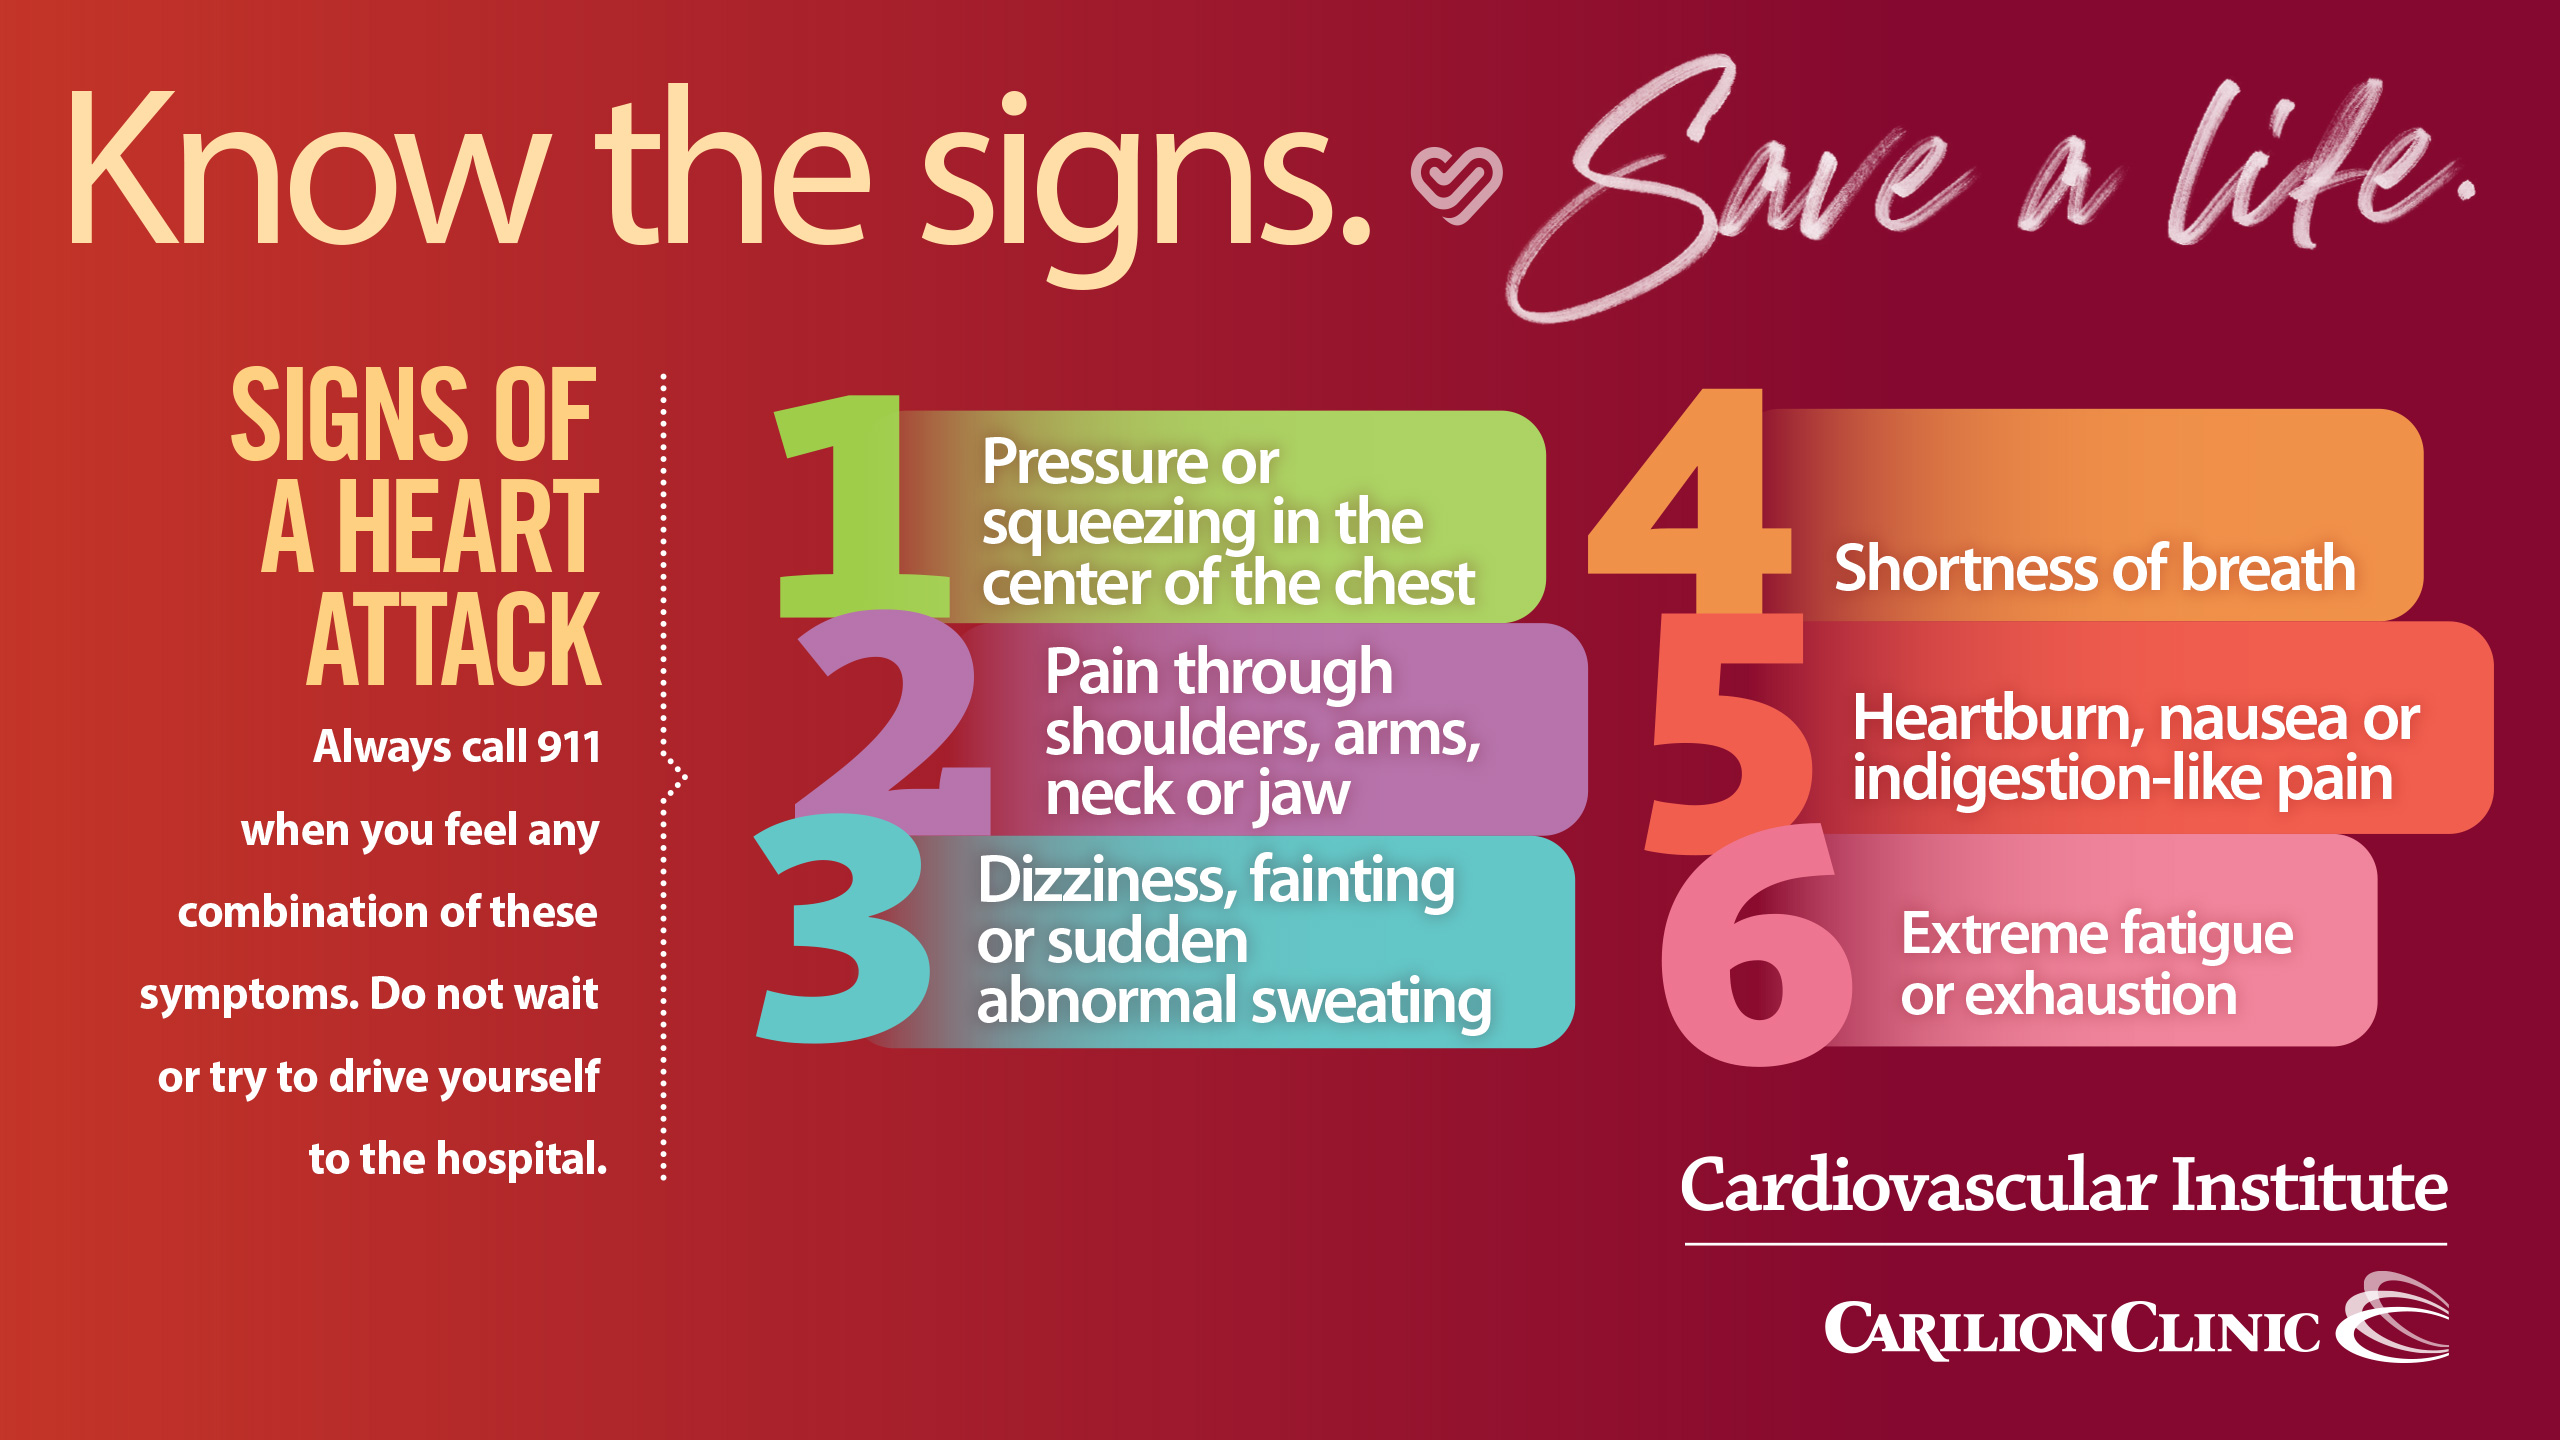 image listing the signs of a heart attack in bright colors on red background